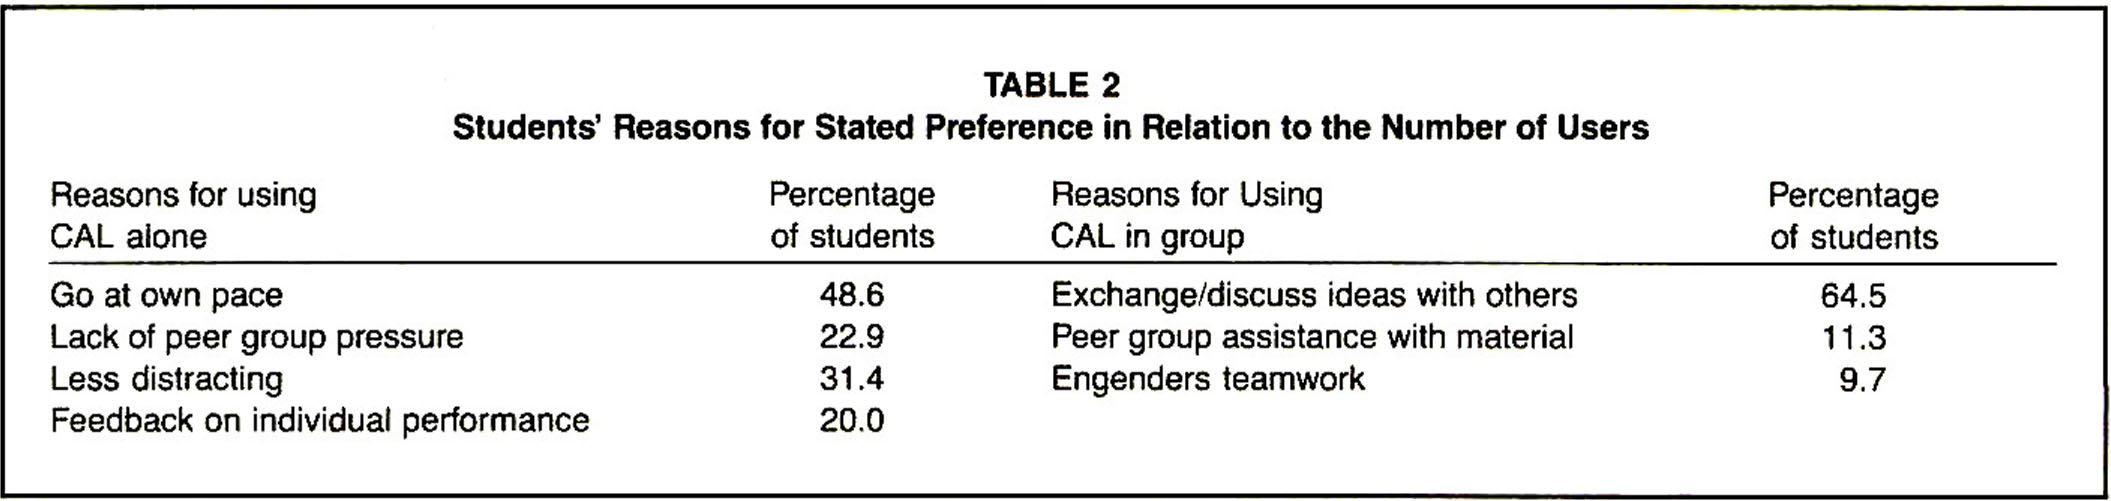 Students' Reasons for Stated Preference in Relation to the Number of Users